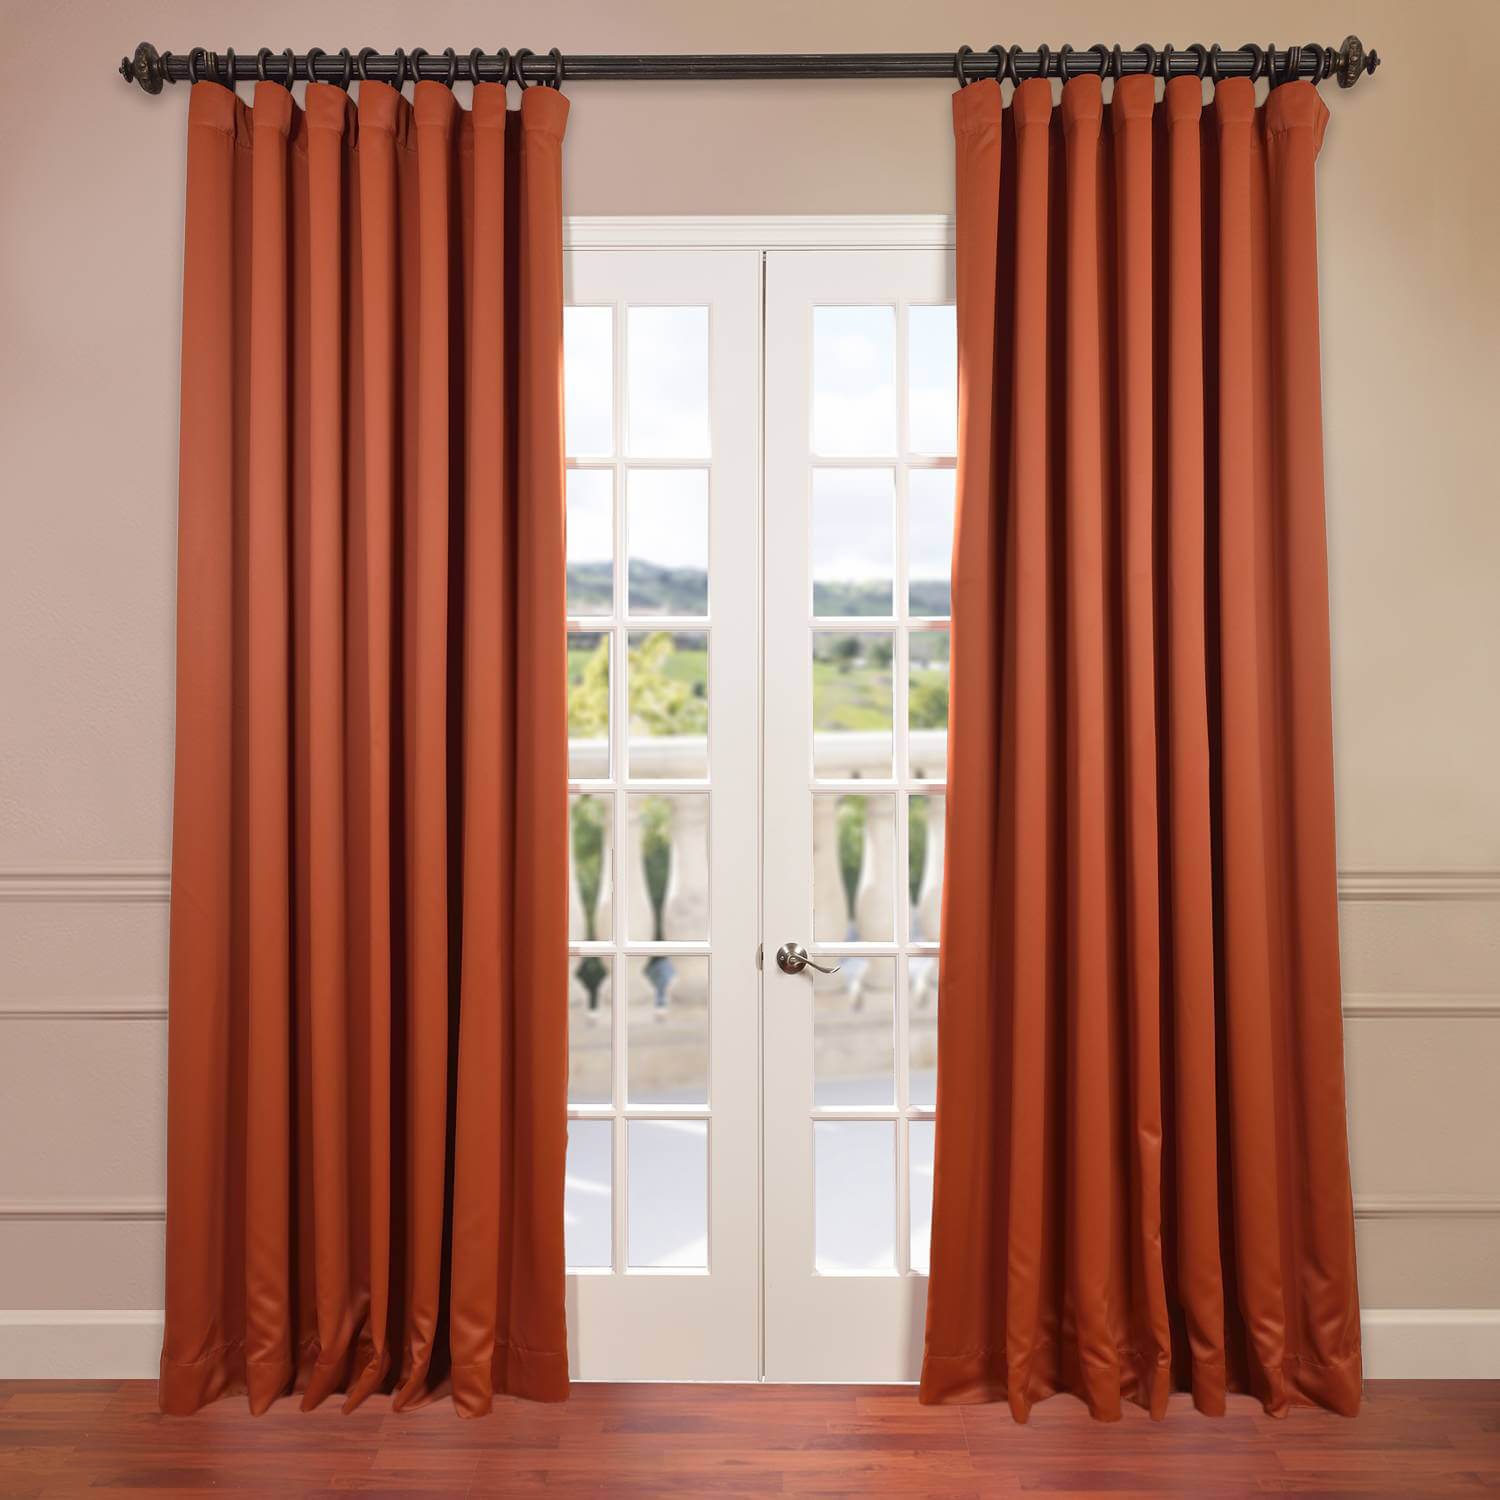 Blaze Doublewide Blackout Curtain